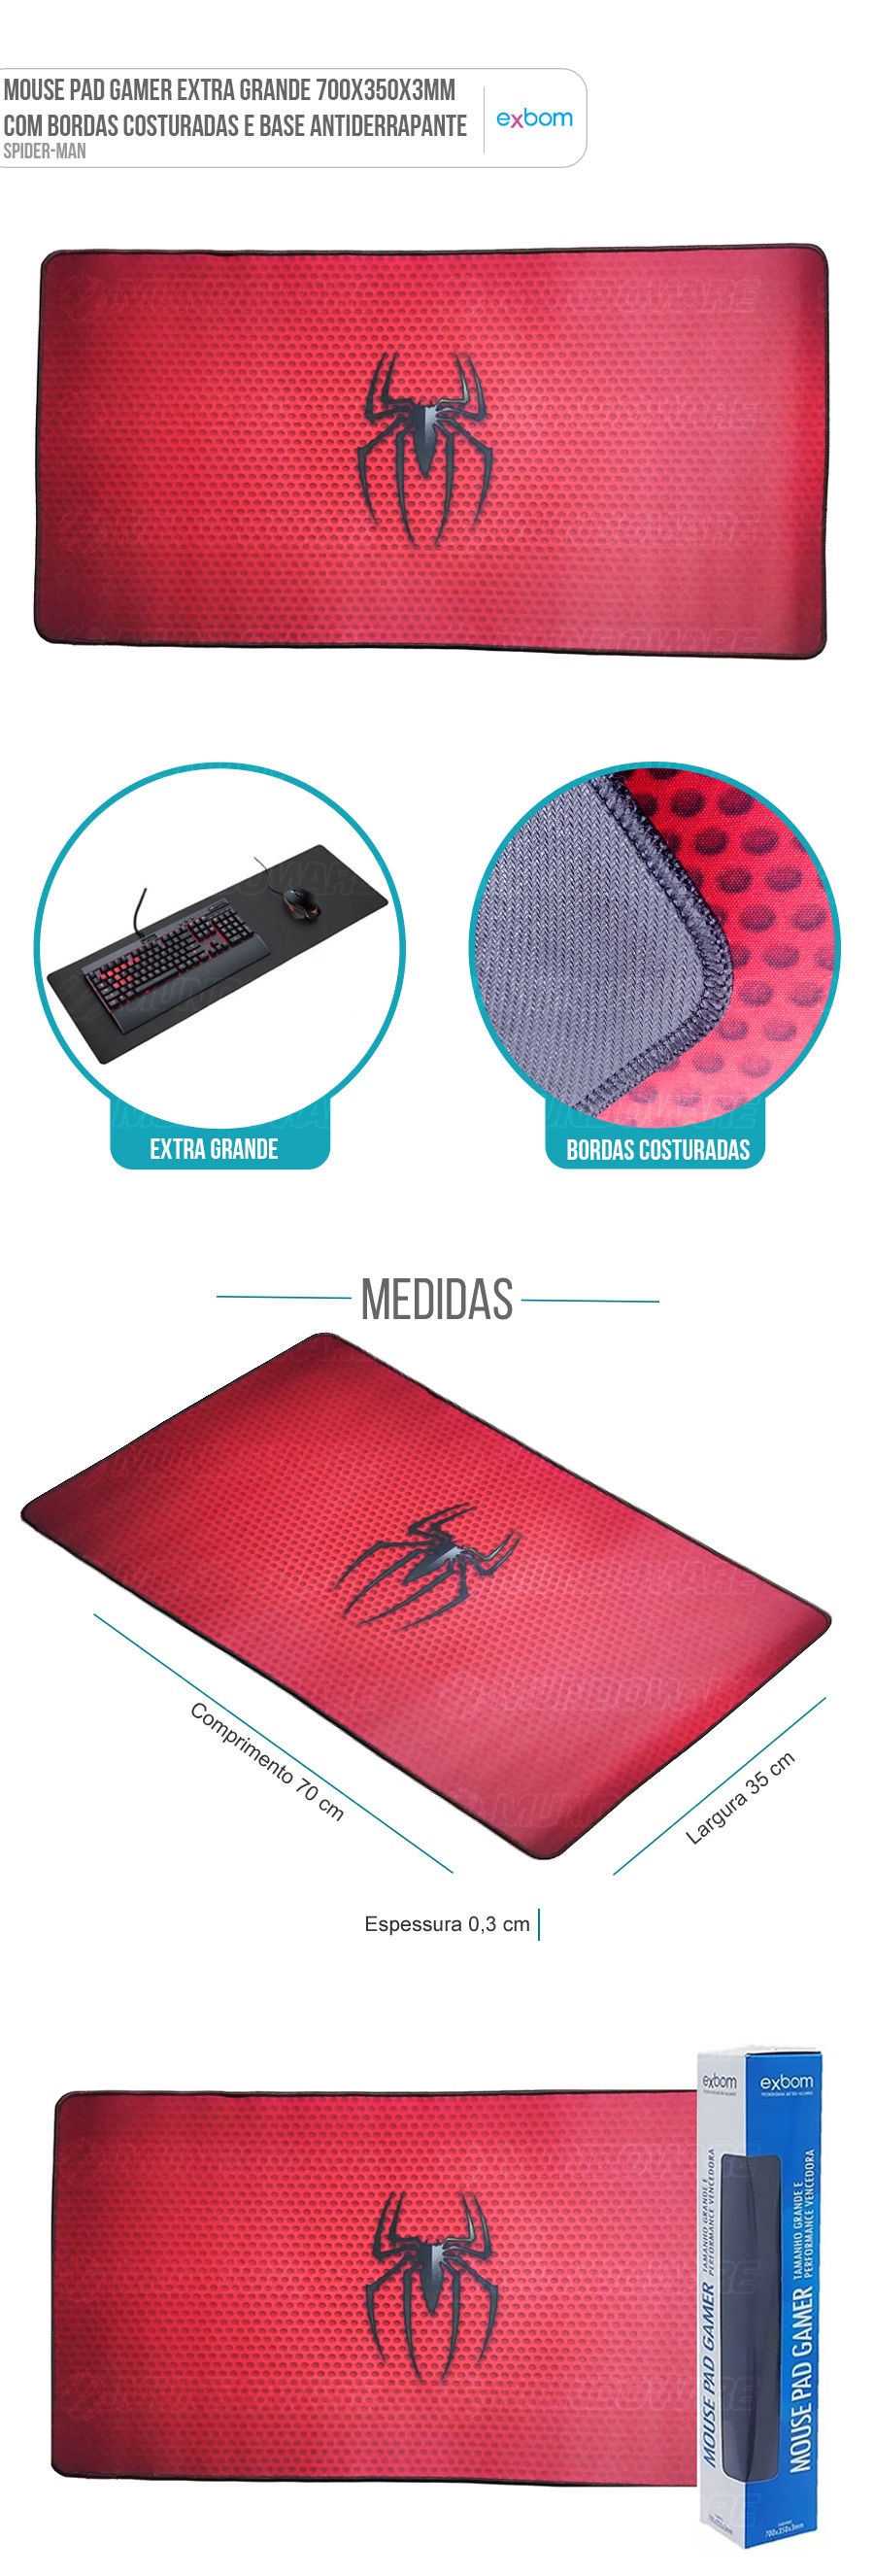 Mouse Pad Gaming Extra Grande Large Gamer Spider